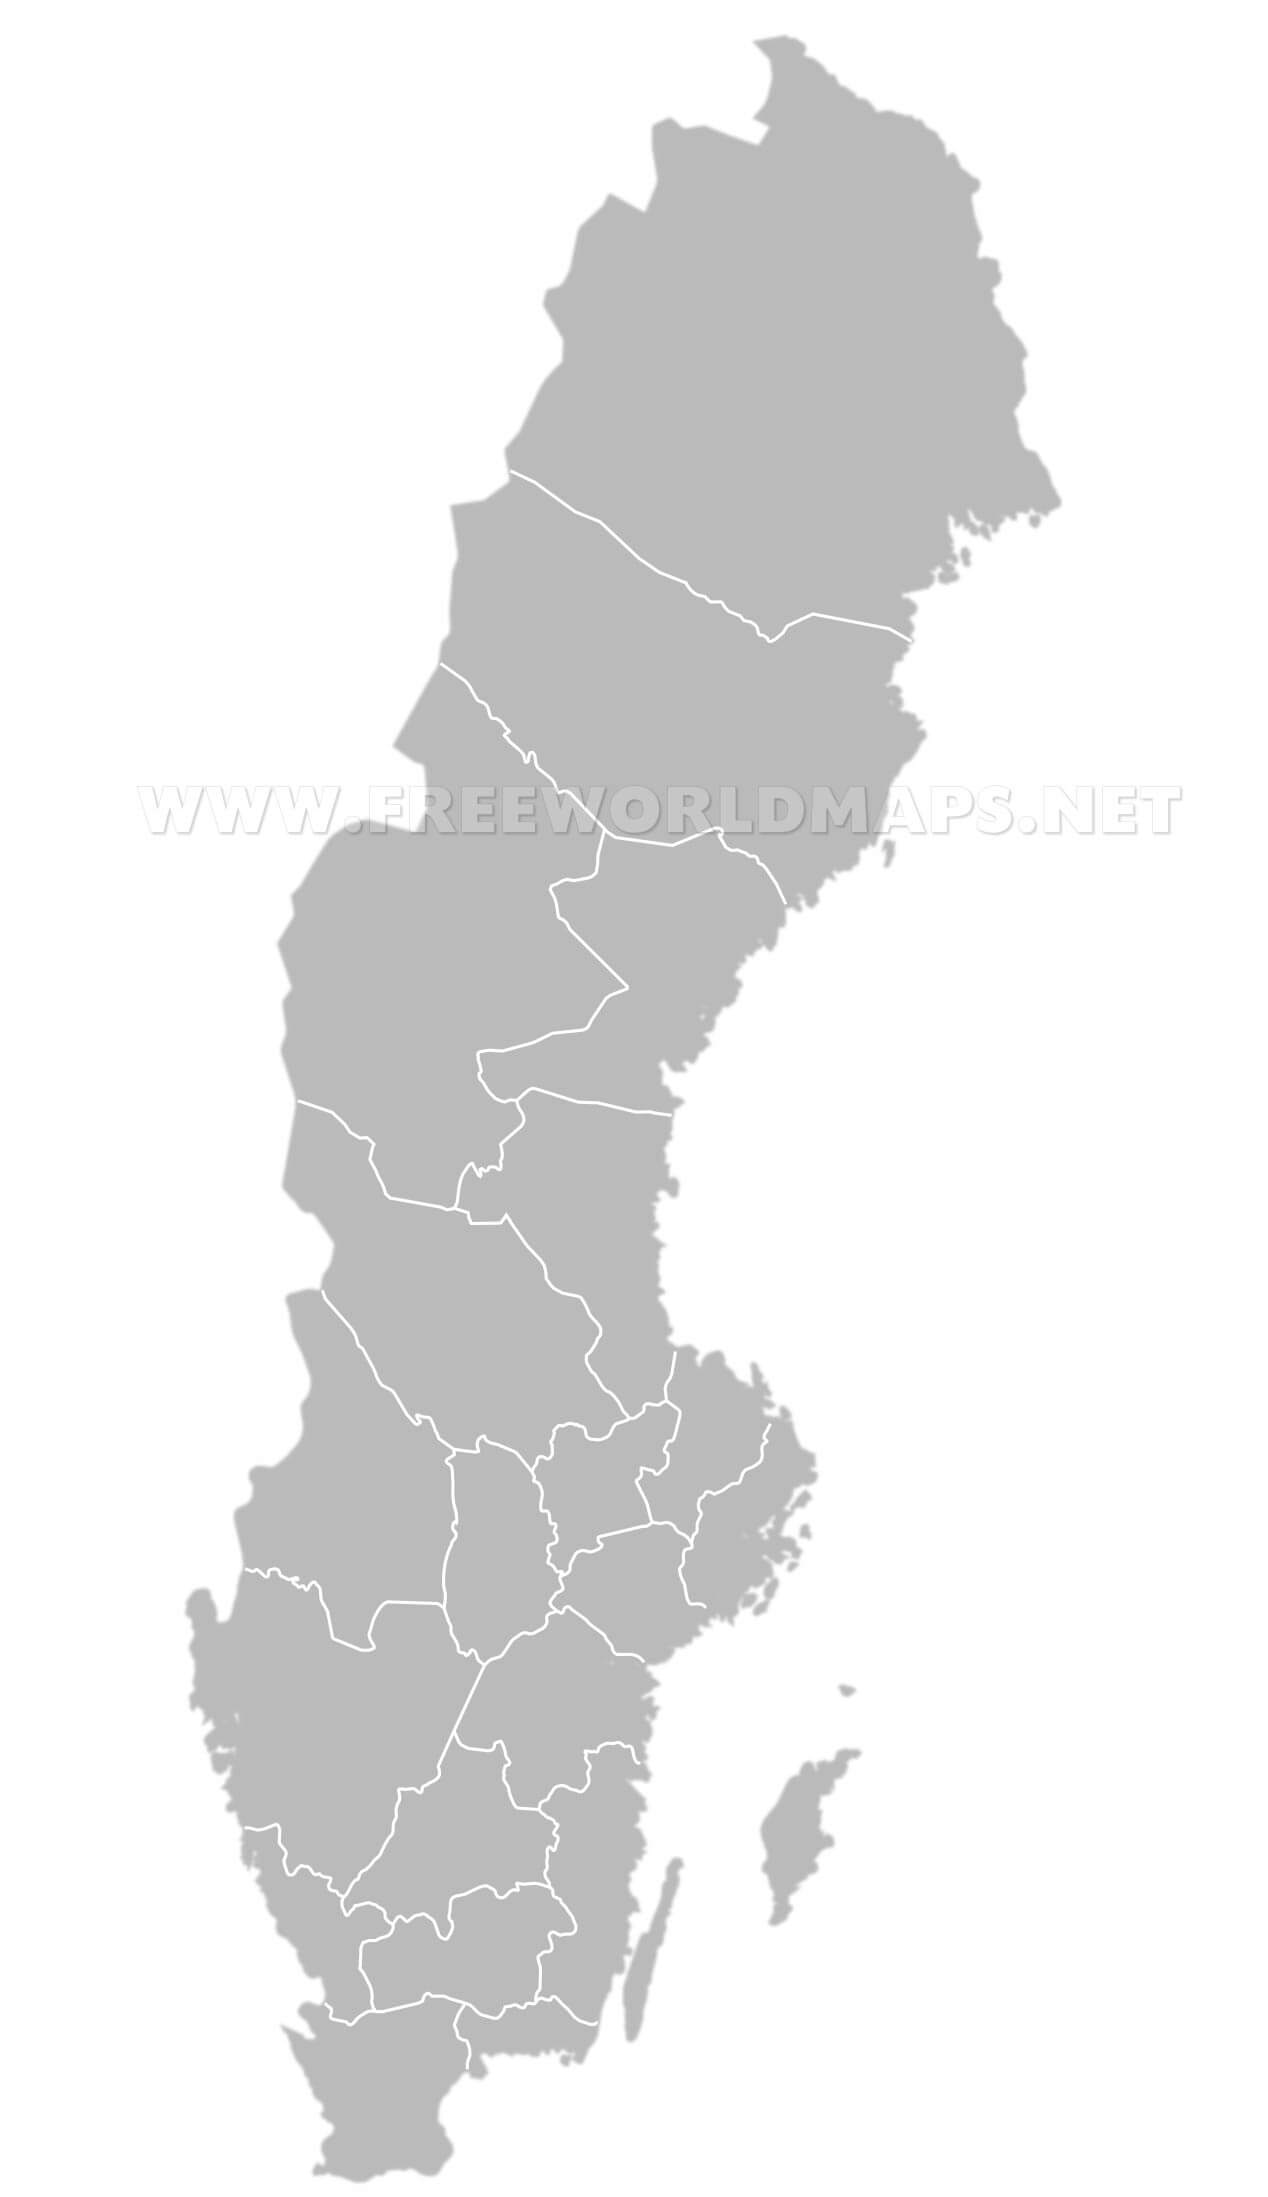 Sweden Political Map - Sweden map blank